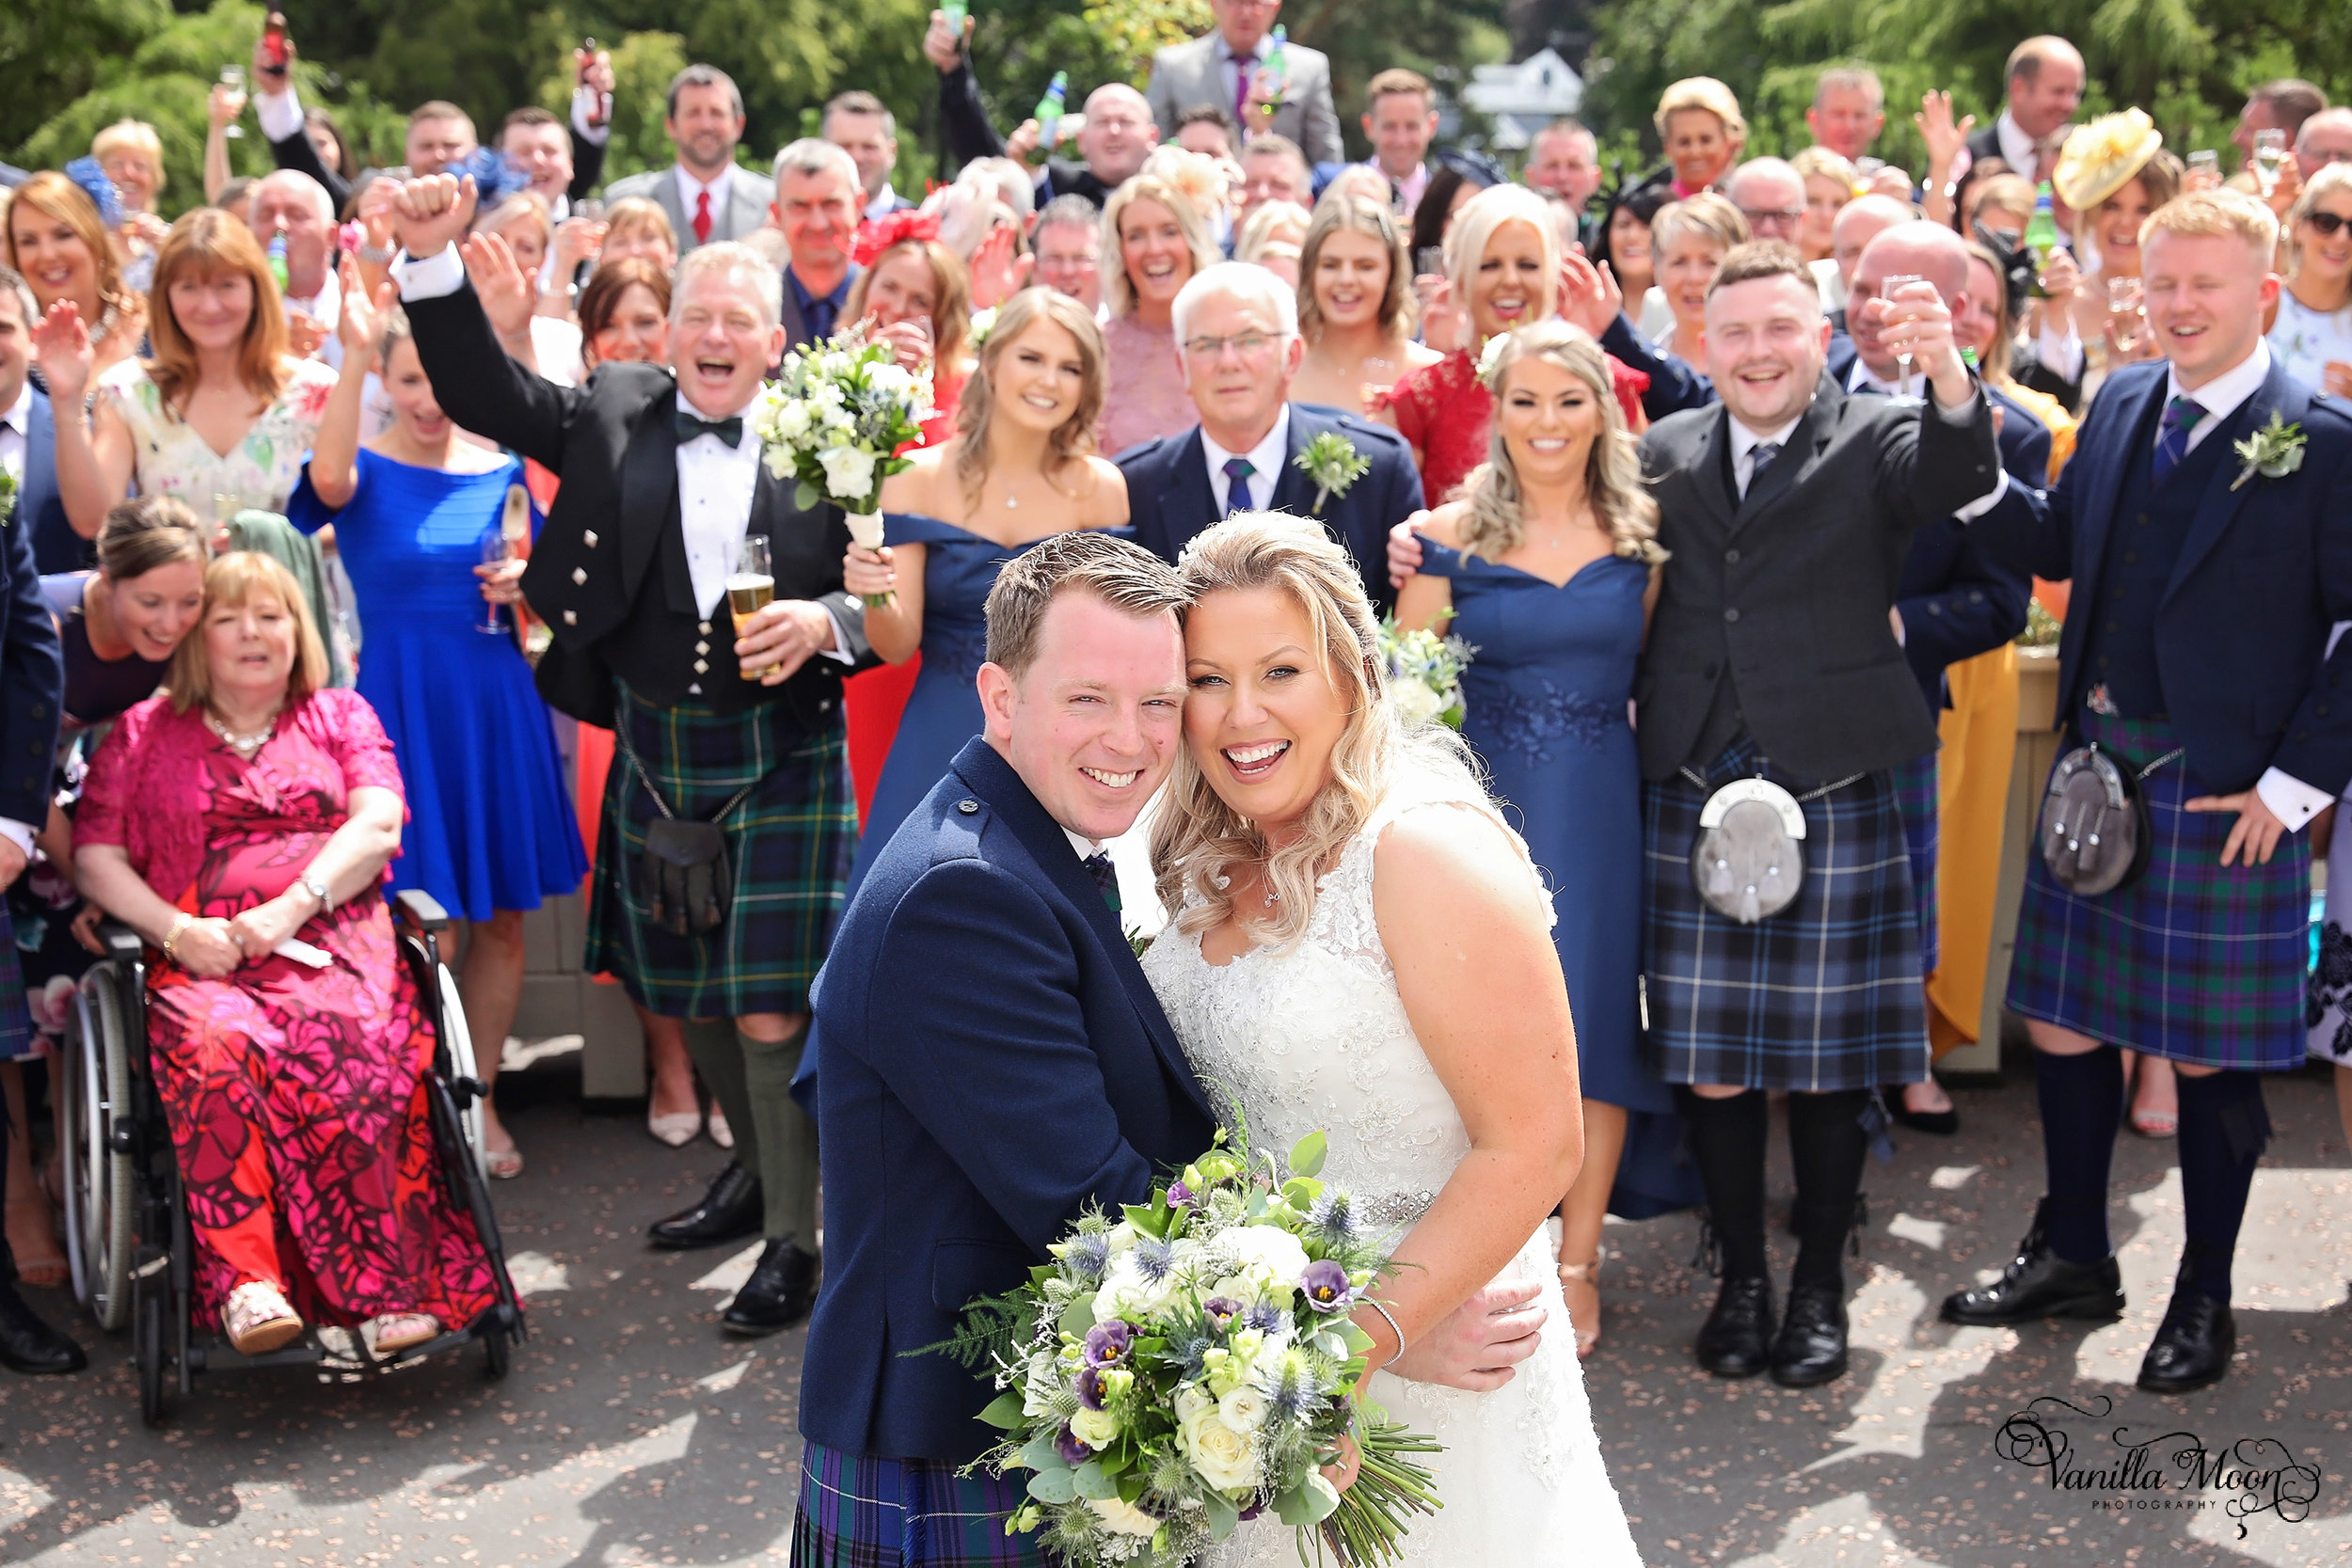 Group wedding photography Peebles, Scotland